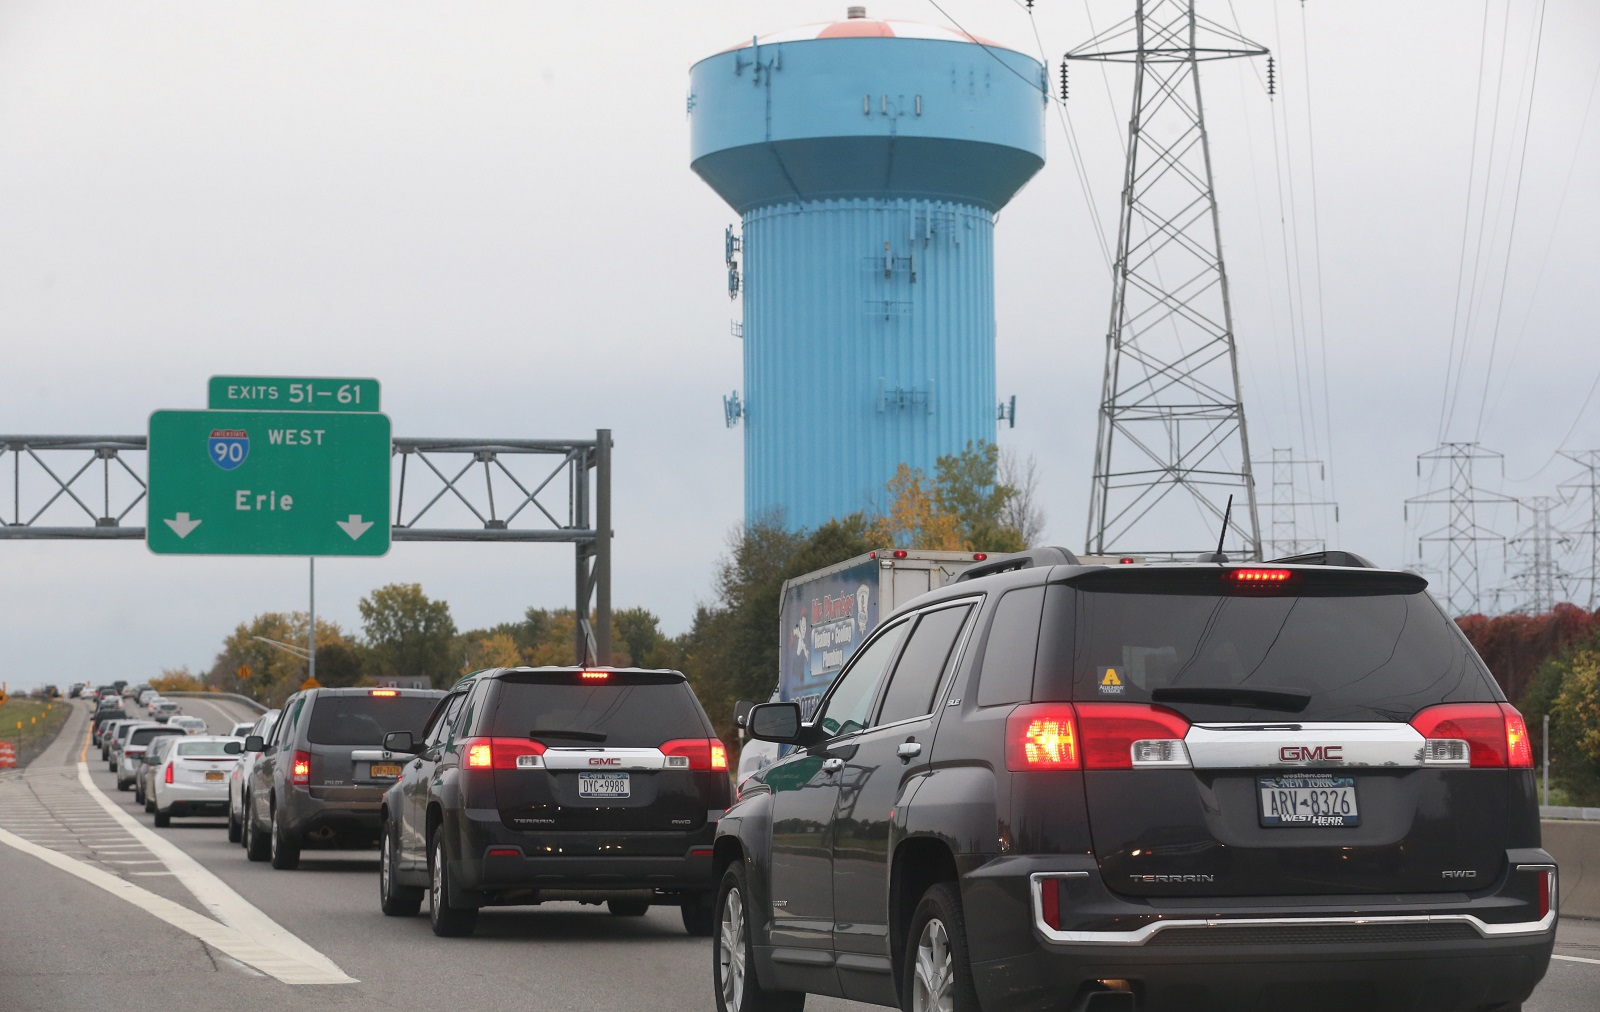 The Town of Amherst blue water tower looms large during rush hour traffic in this 2016 photo. The Amherst landmark didn't factor in the best of the also-ran official slogan entries. (Sharon Cantillon/News file photo)